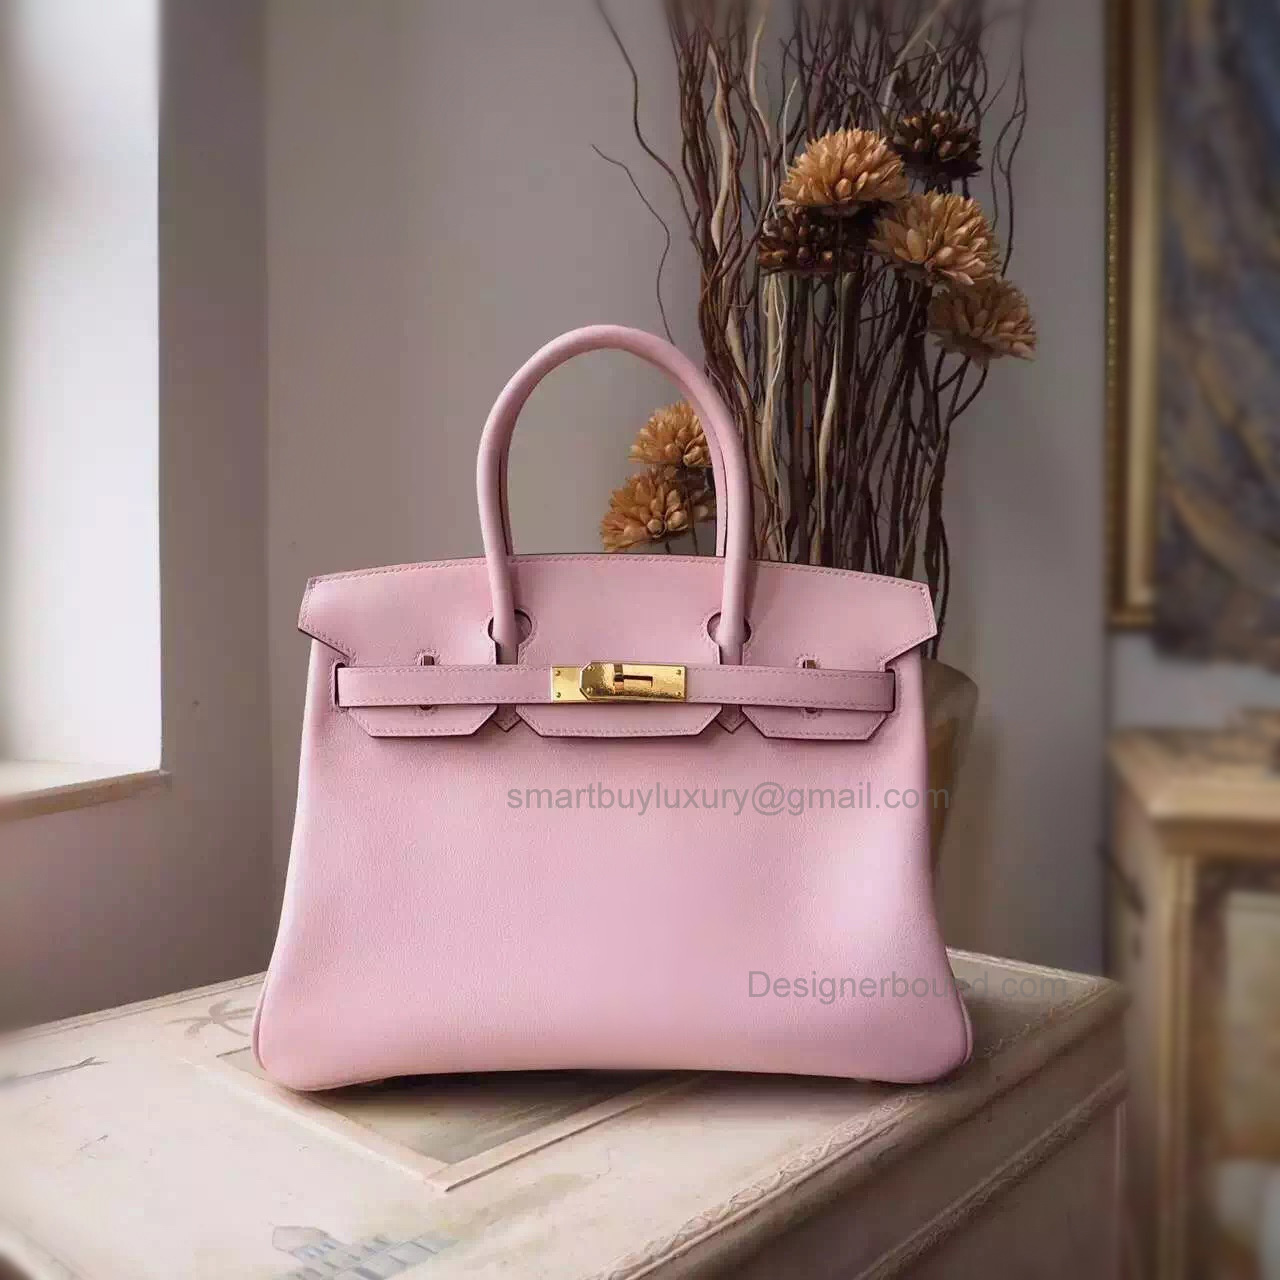 Hand Stitched Hermes Birkin 30 Bag in 3q Rose Sakura Swift Calfskin GHW